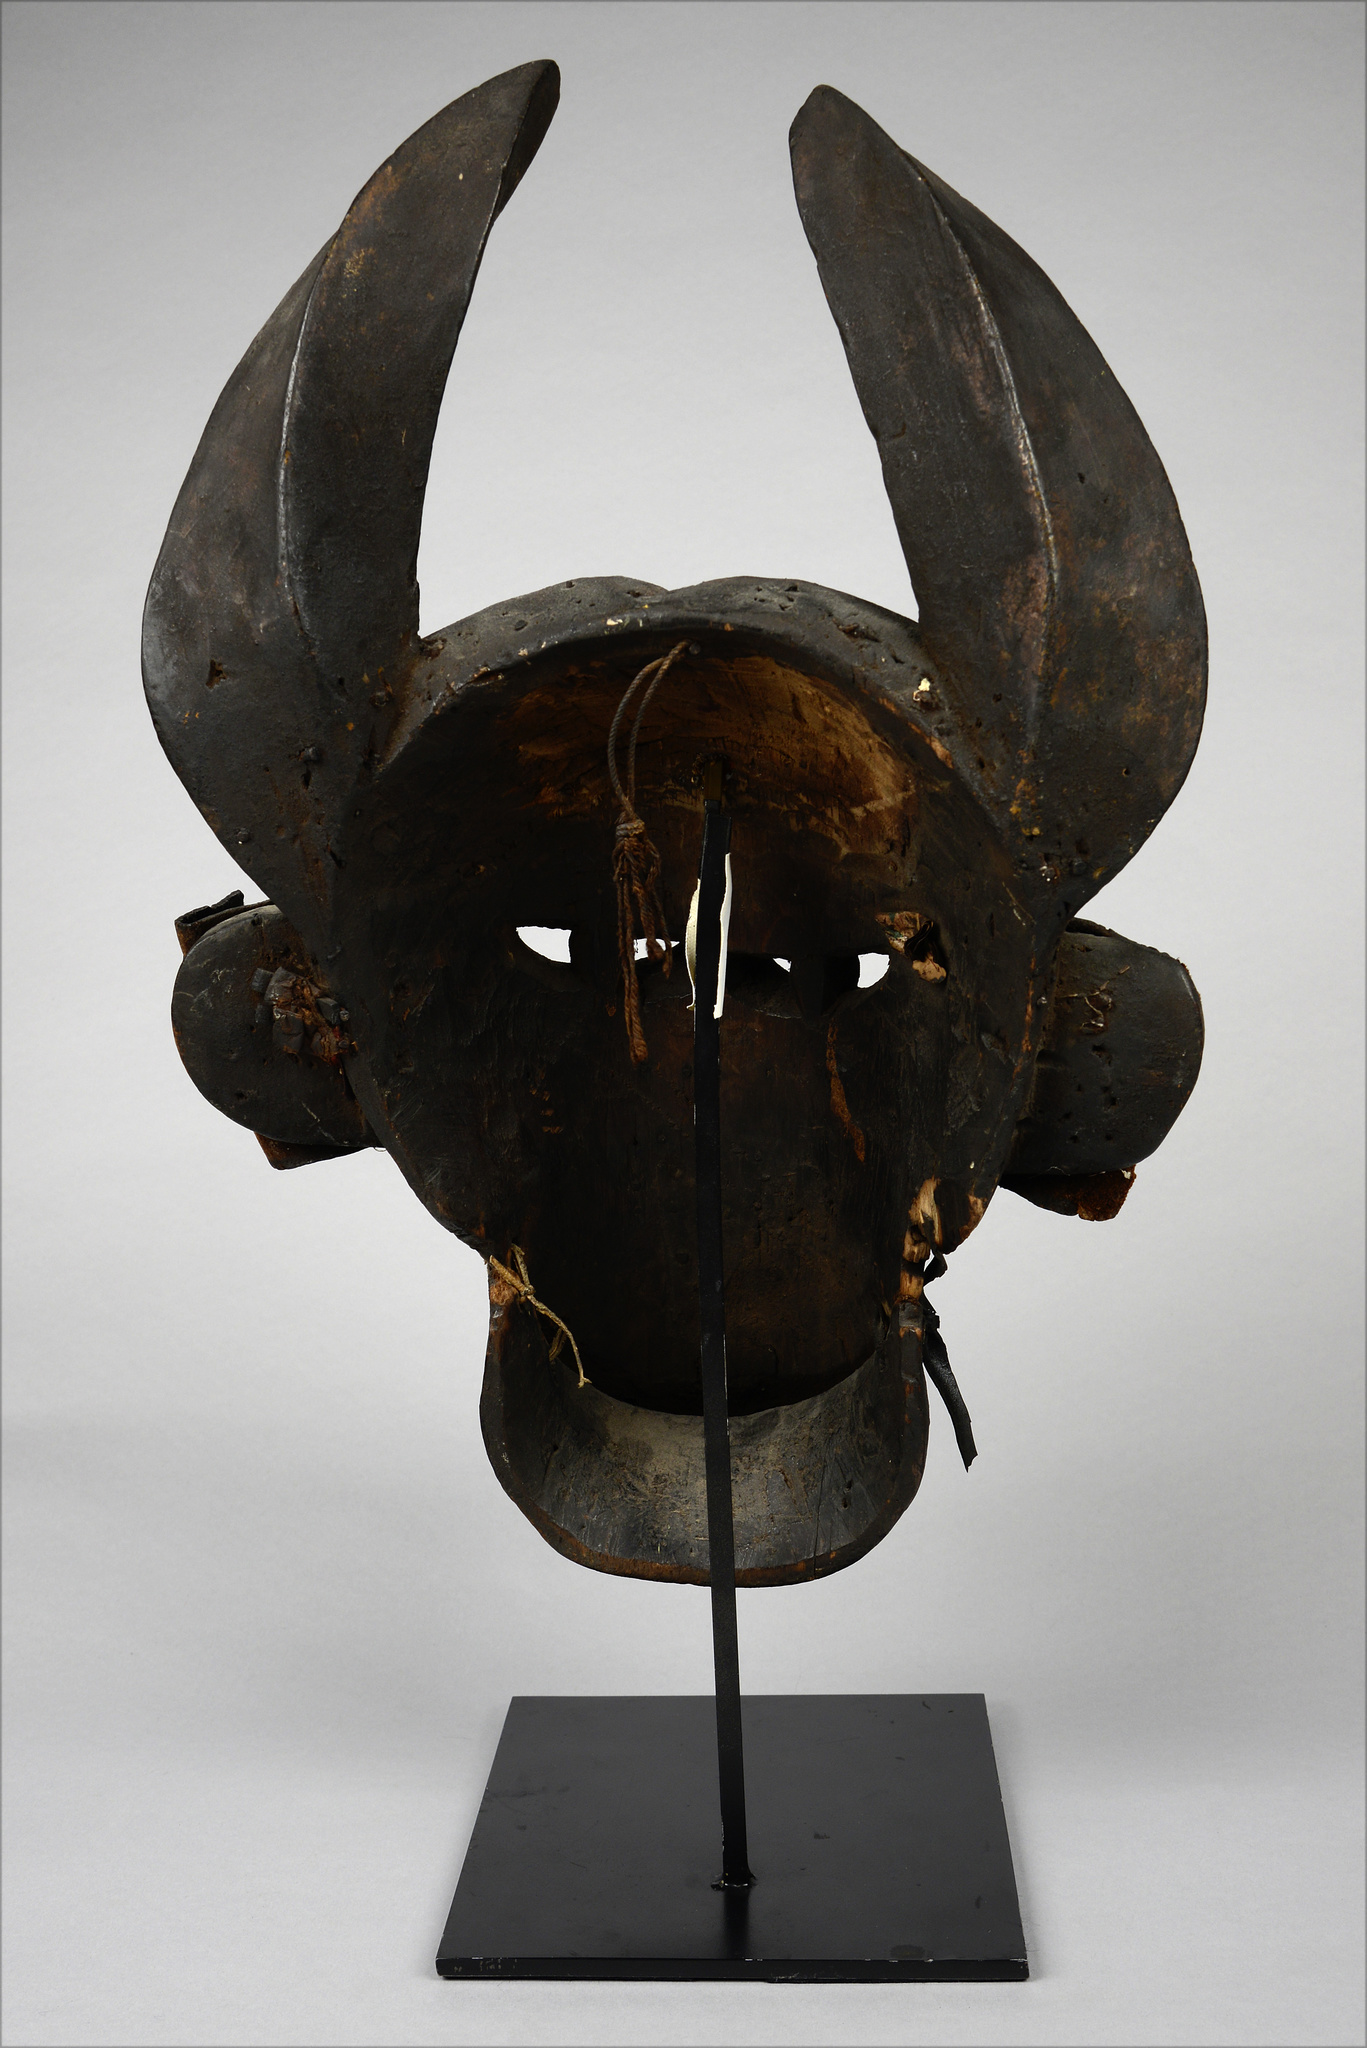 Buffalo mask with articulated jaw